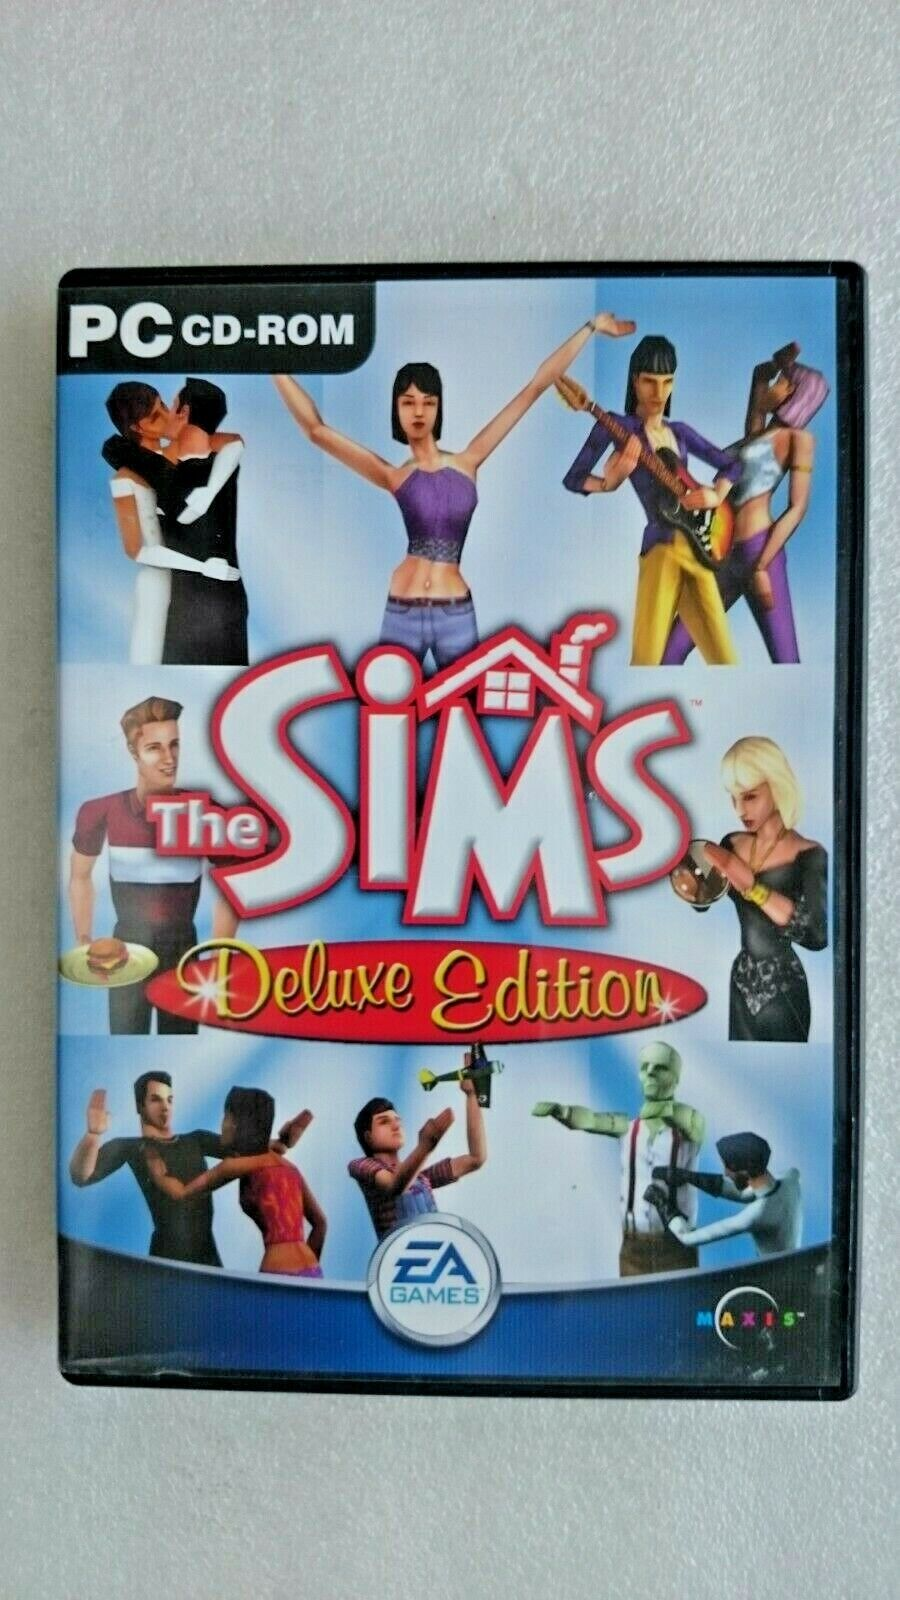 The Sims Deluxe Edition (PC: Windows, 2000)